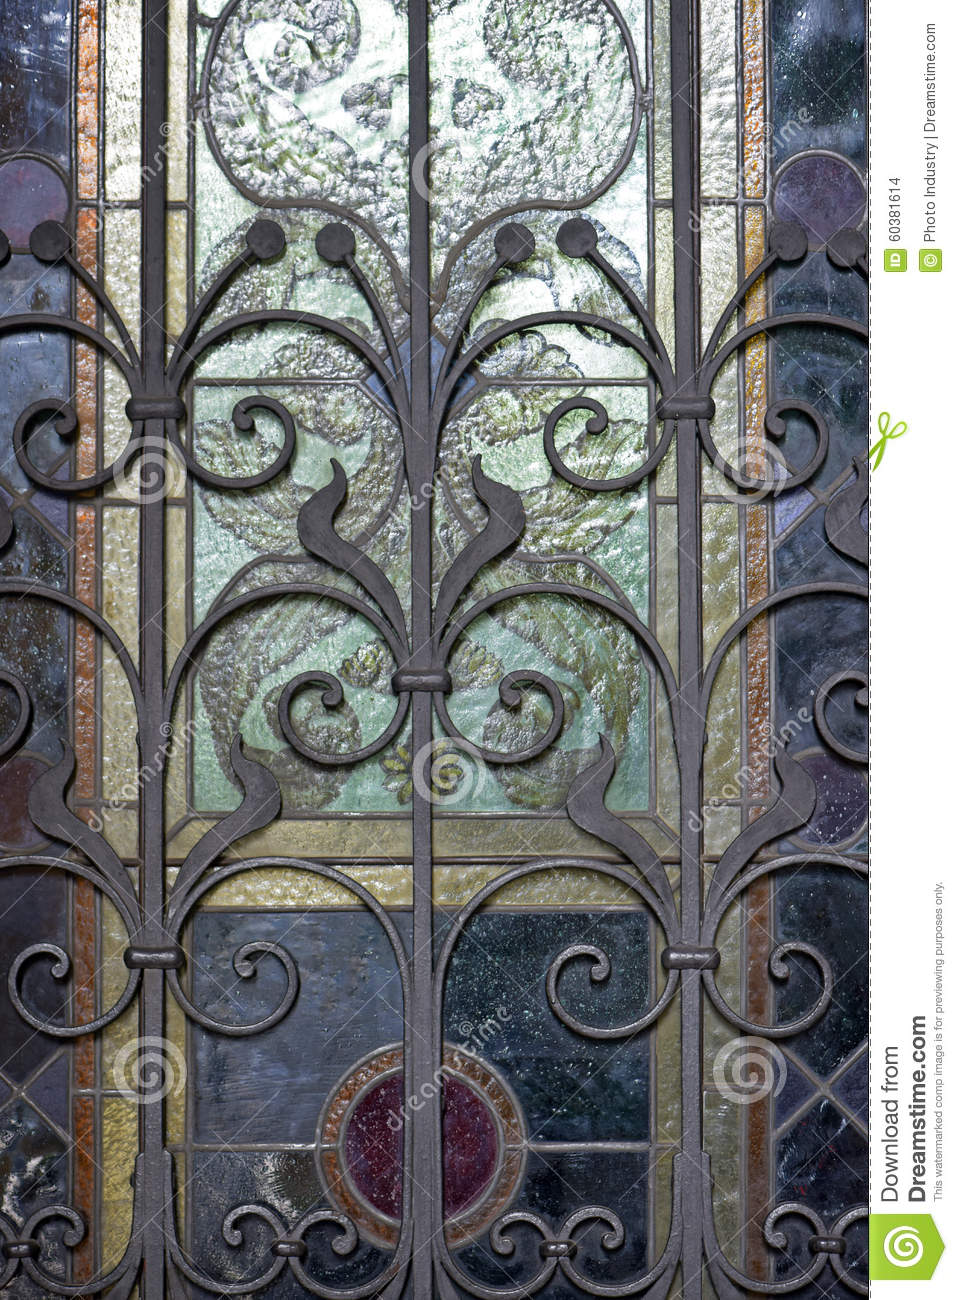 Metal Grating In Art Deco Style Stock Photo - Image of glass ...